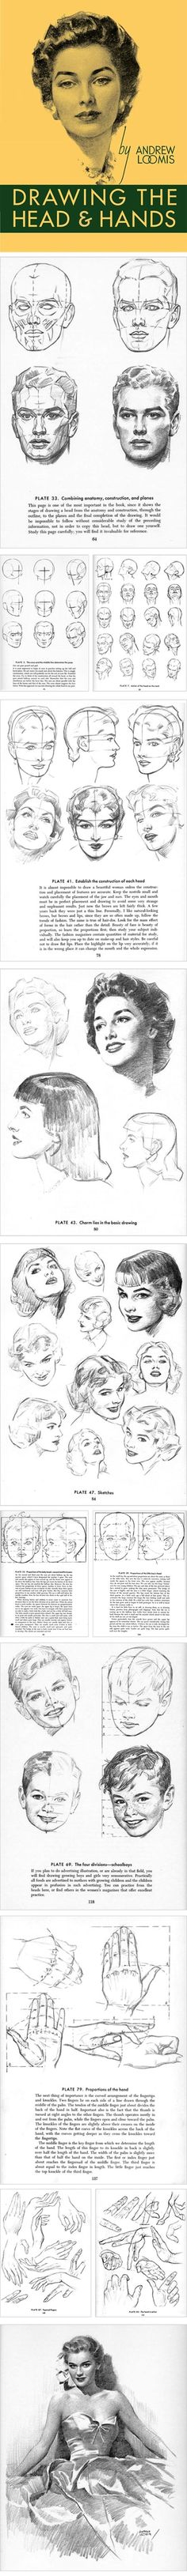 Andrew Loomis – Drawing Head and Hands